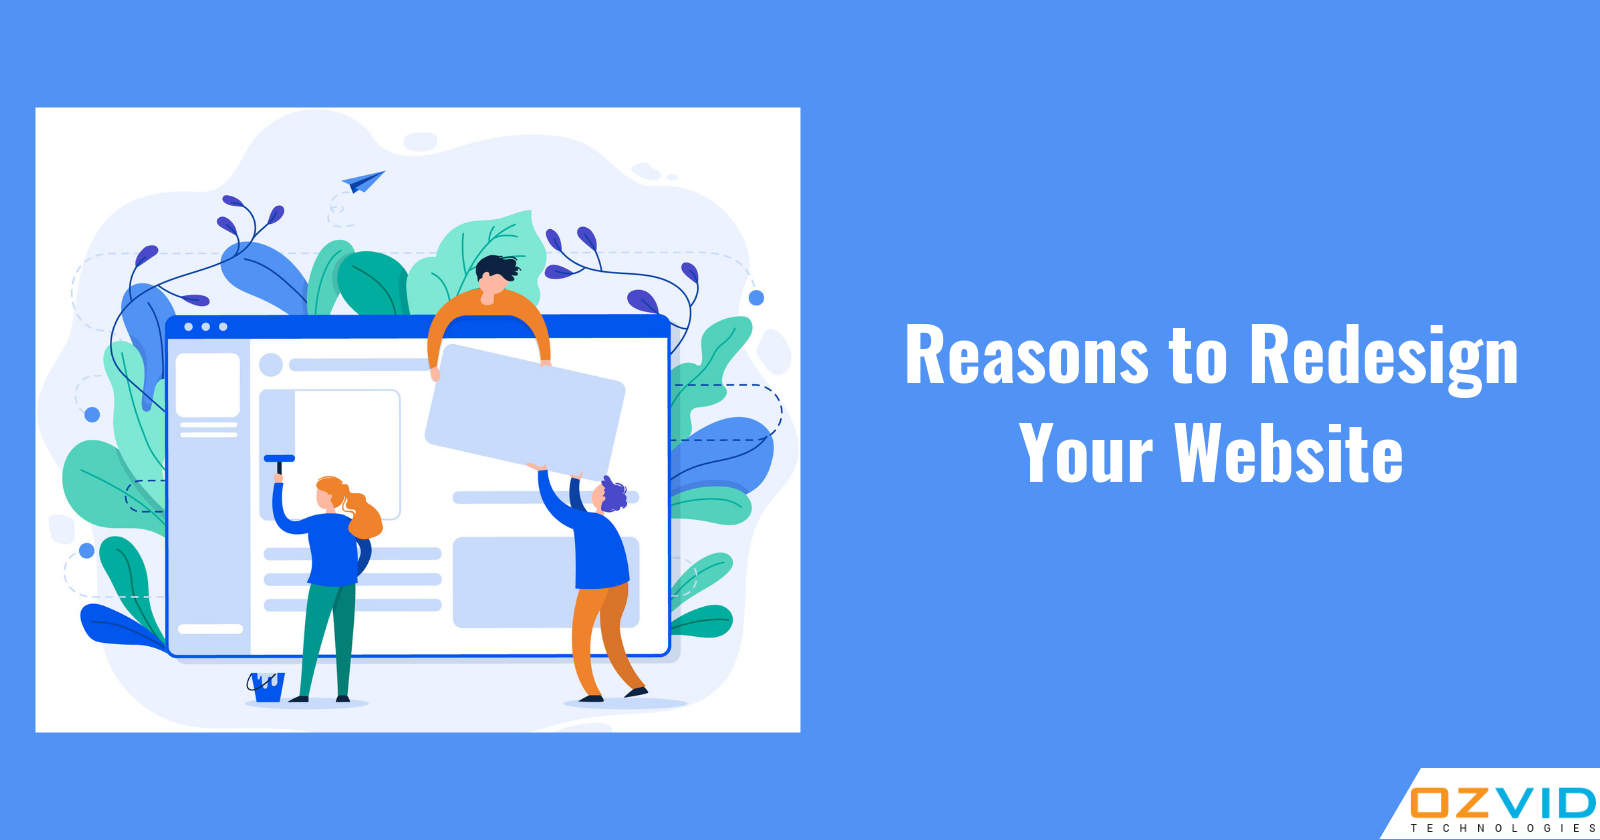 Reasons Why You Should Redesign Your Website